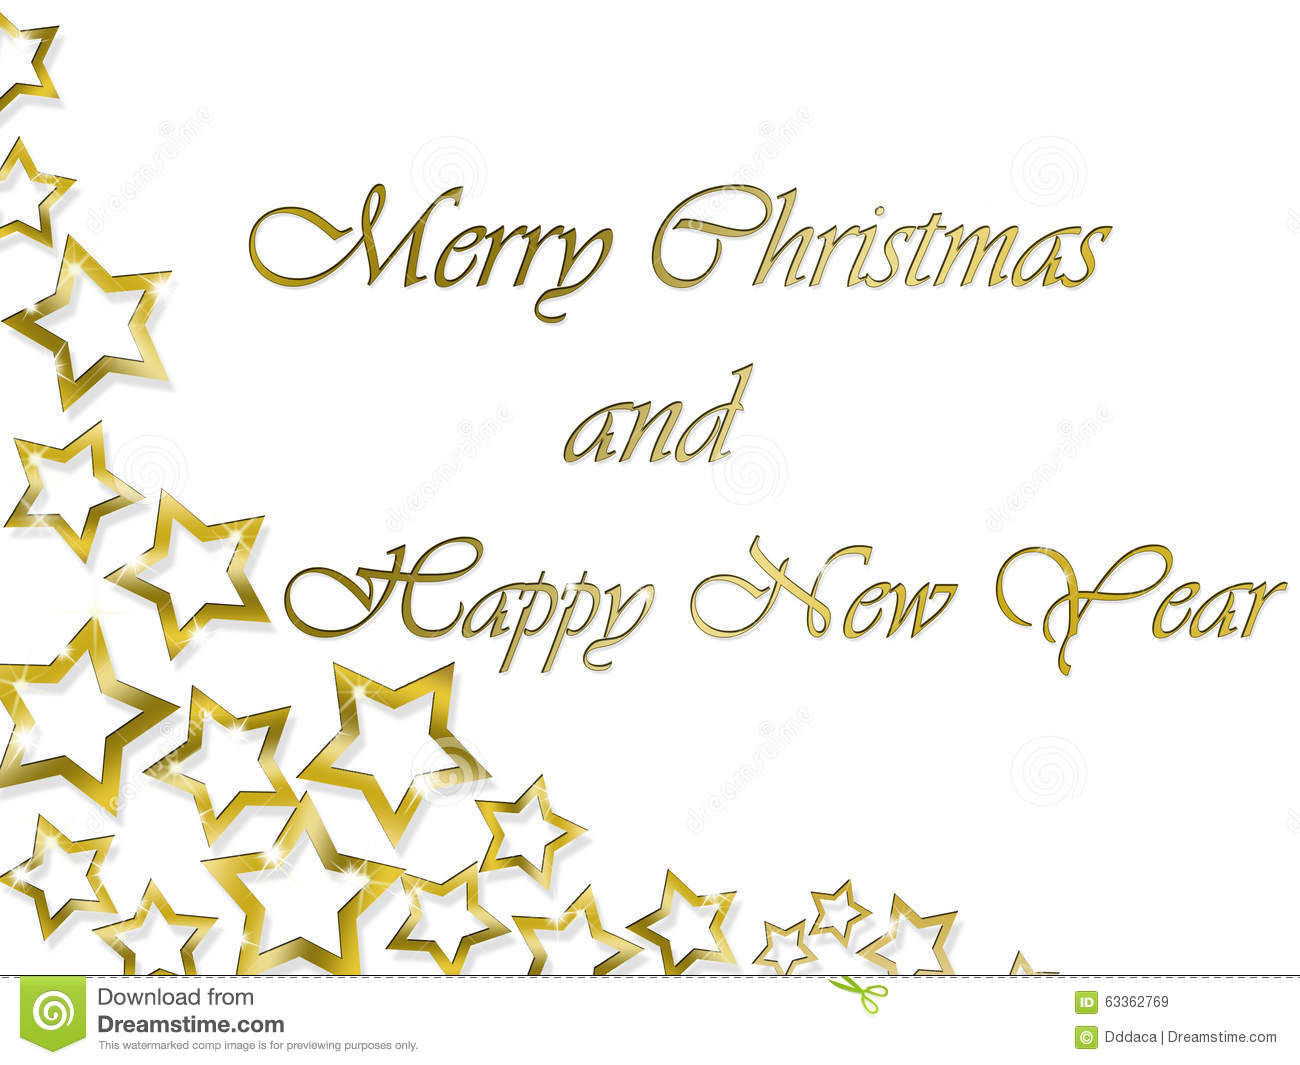 merry christmas and happy new year background with golden letters and stars